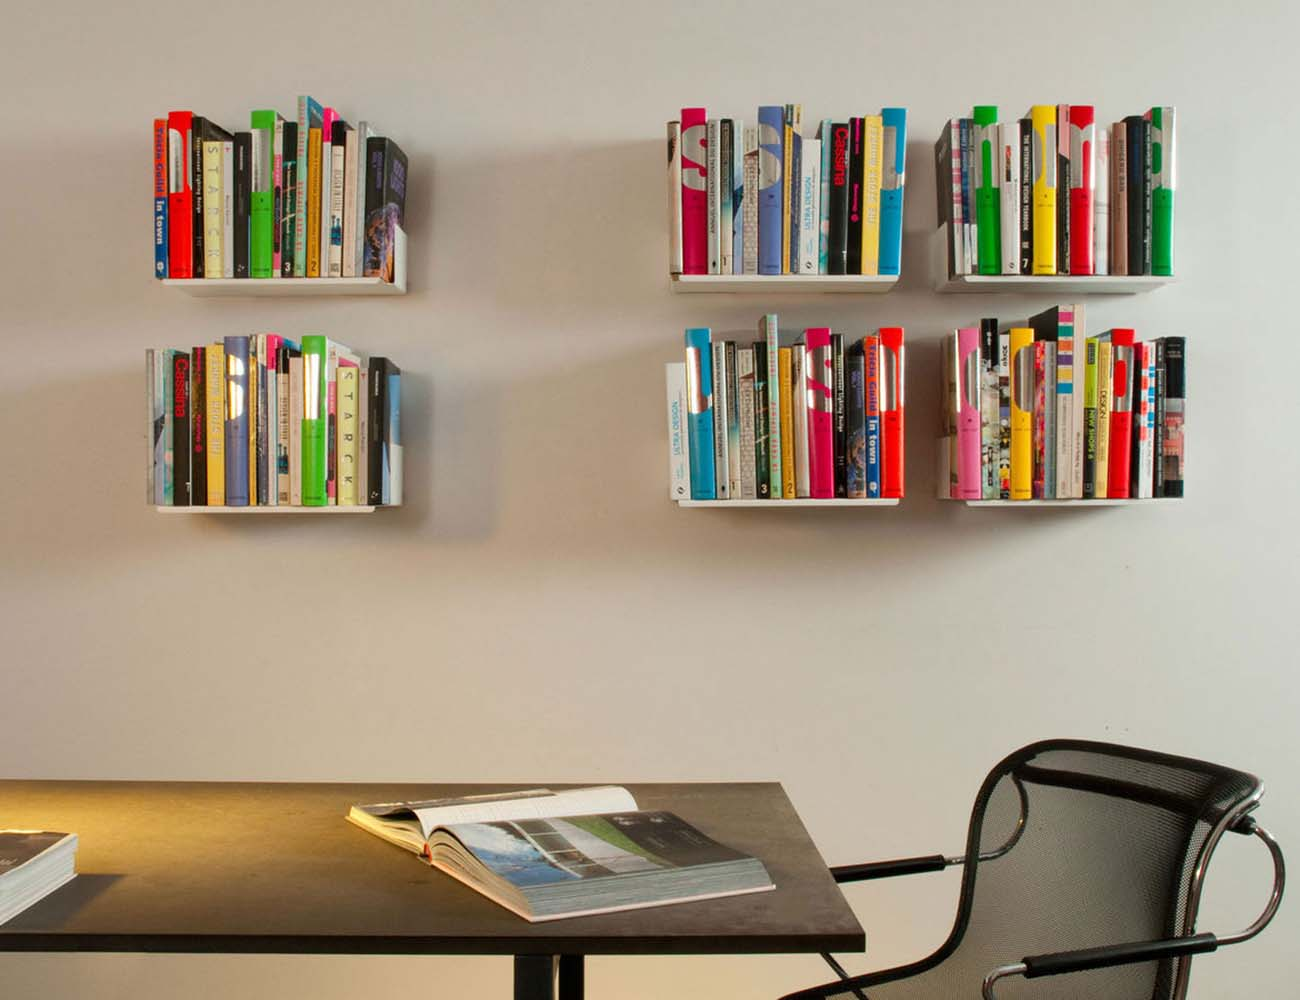 judd wall shelves by teebooks keep your books suspended. Black Bedroom Furniture Sets. Home Design Ideas